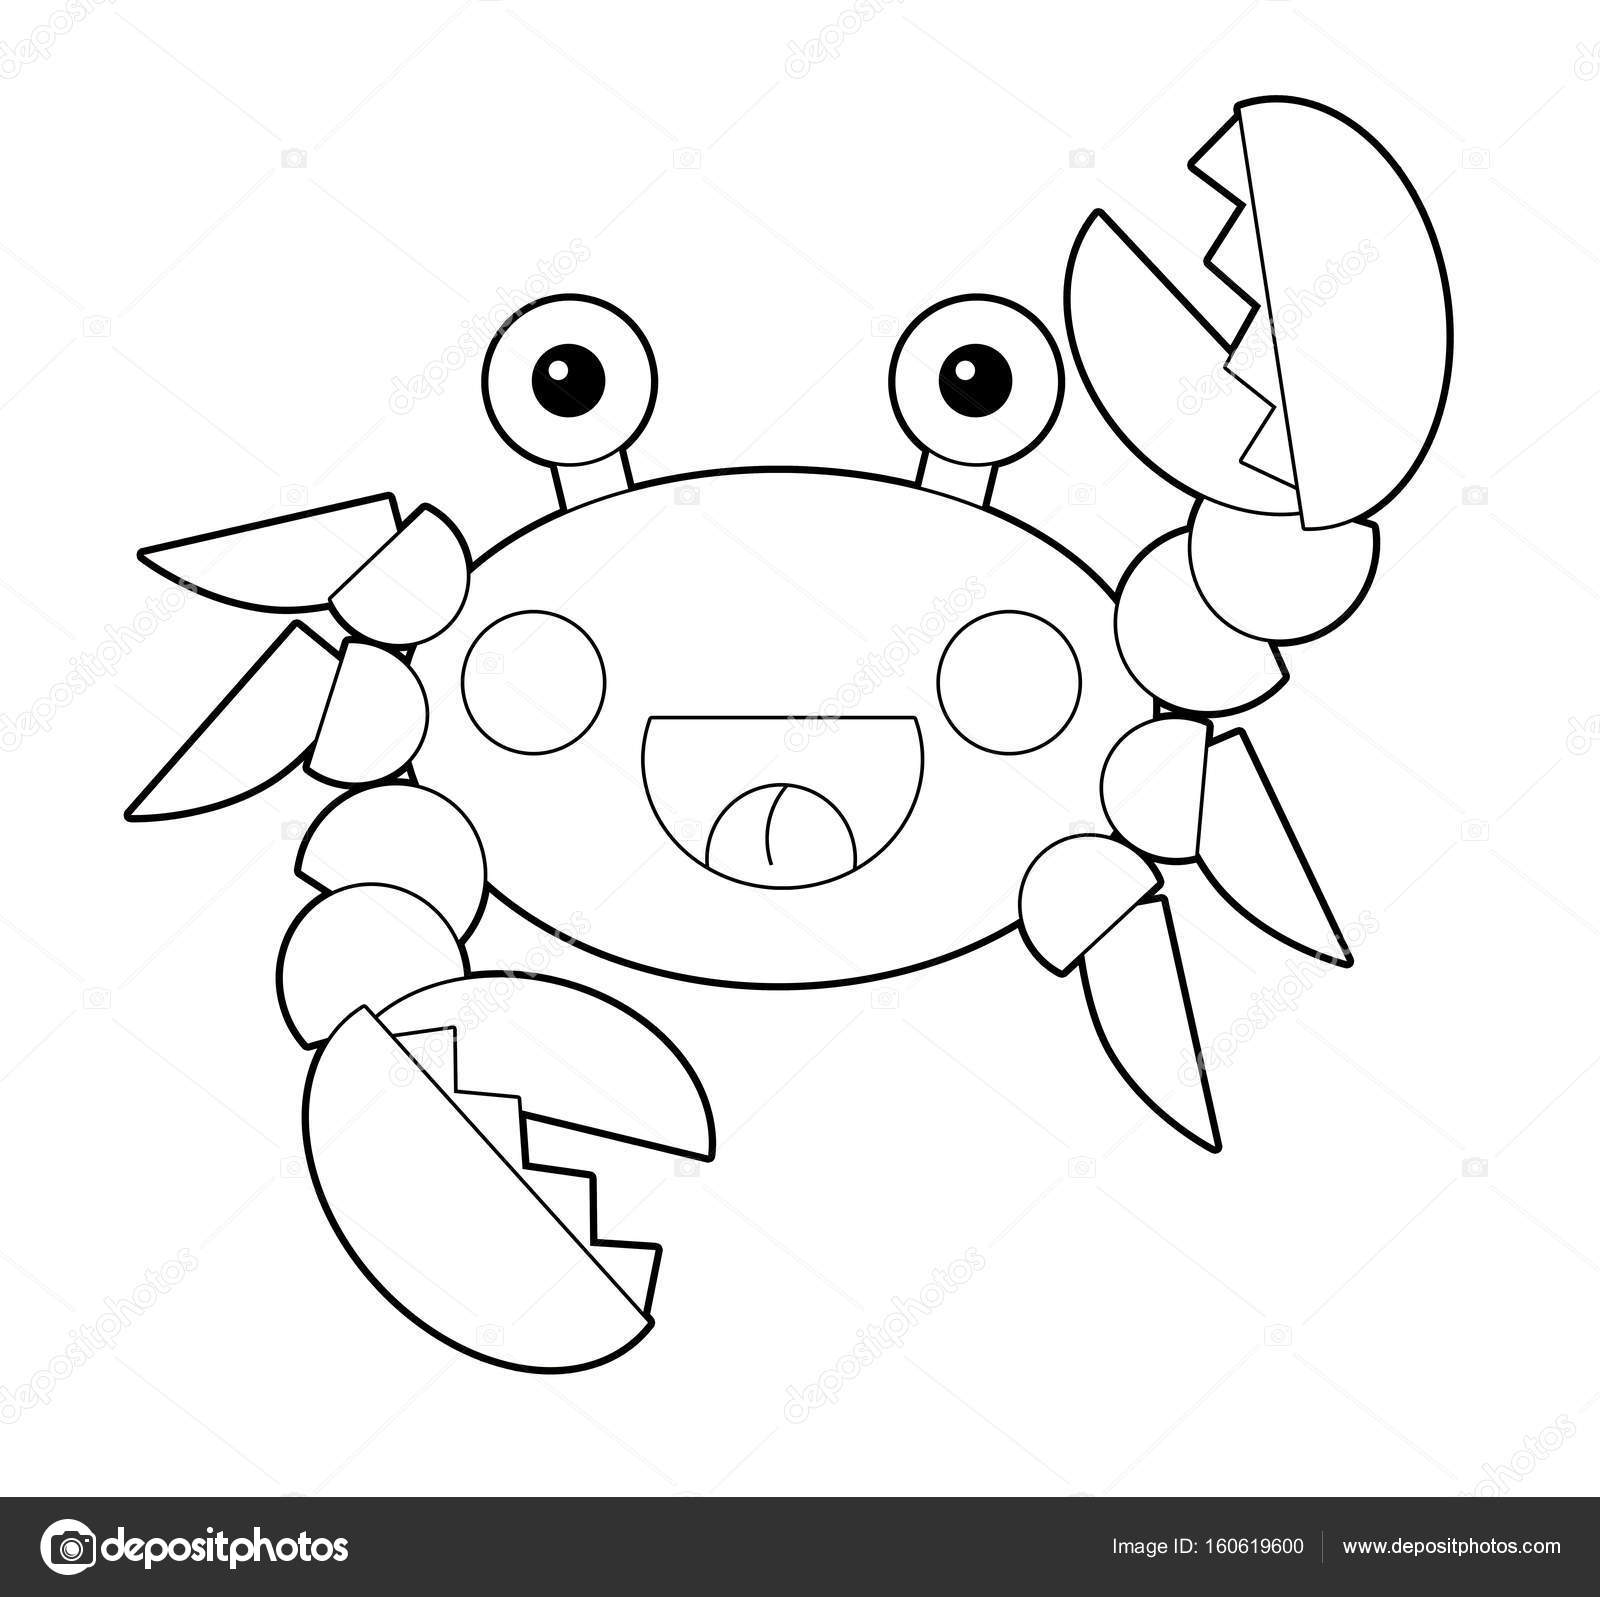 Cartoon-Meer-Krabbe mit Malvorlagen — Stockfoto © illustrator_hft ...